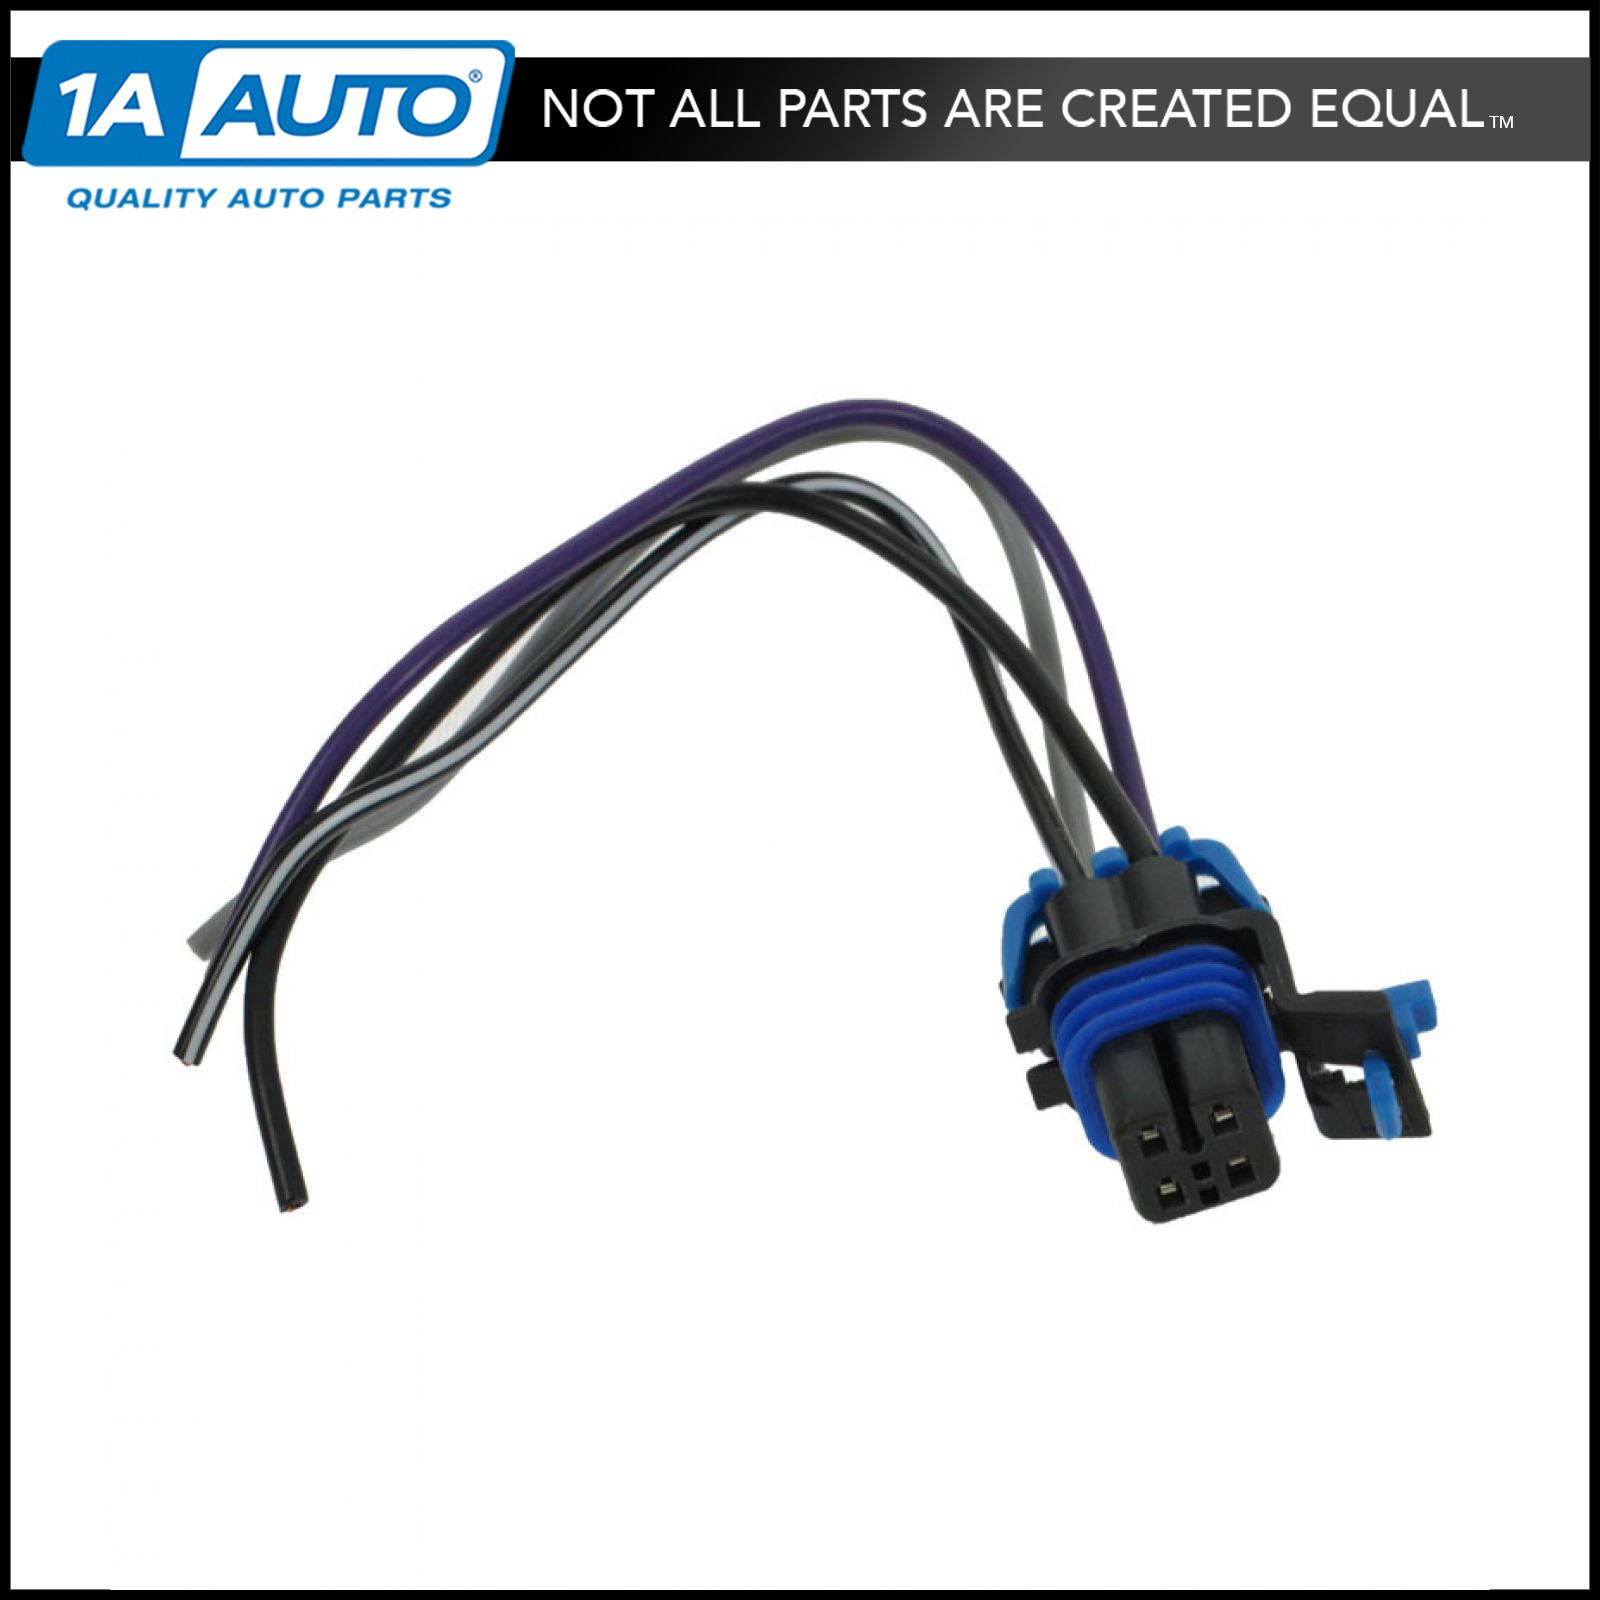 fuel wiring harness with square connector 4 wire pigtail for chevy gm ebay